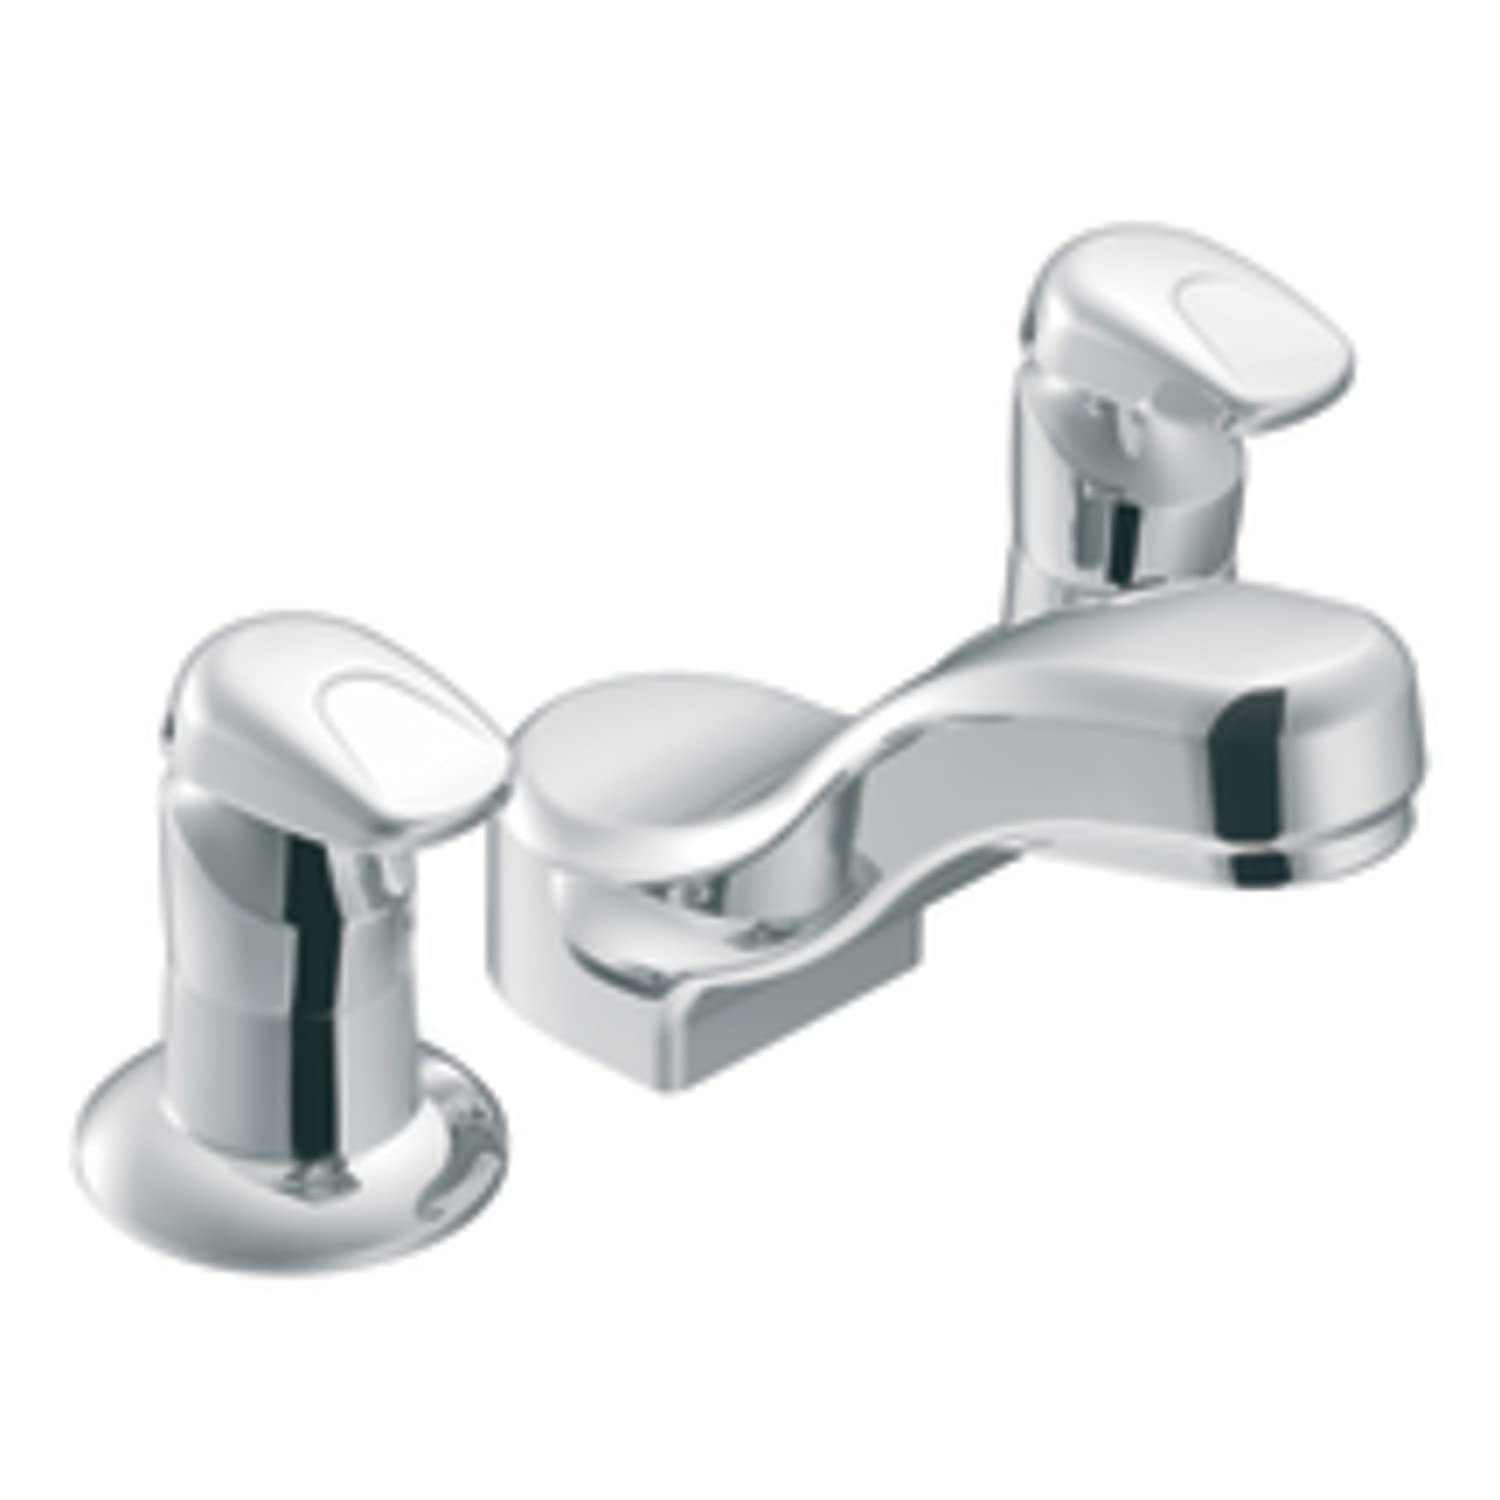 Moen Commercial MPress Widespread Metering Lavatory Faucet - Moen commercial bathroom faucets